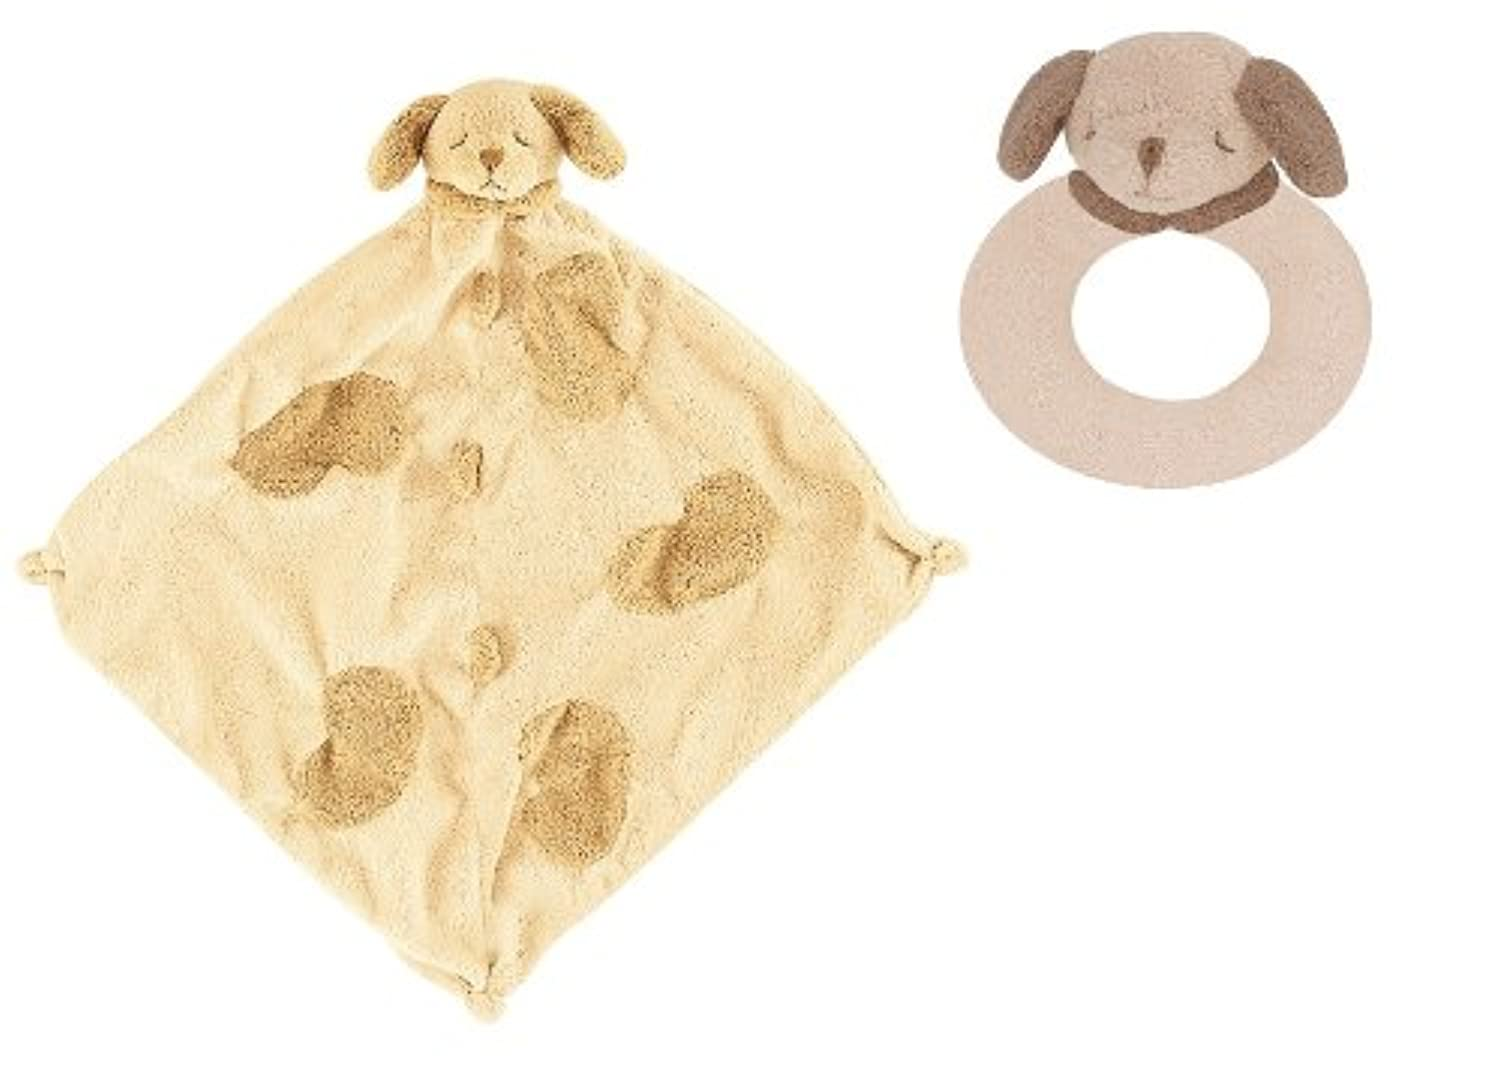 Super Soft Security Blanket with Matching Rattle Baby Gift Set : Tan Puppy Dog by Angel Dear